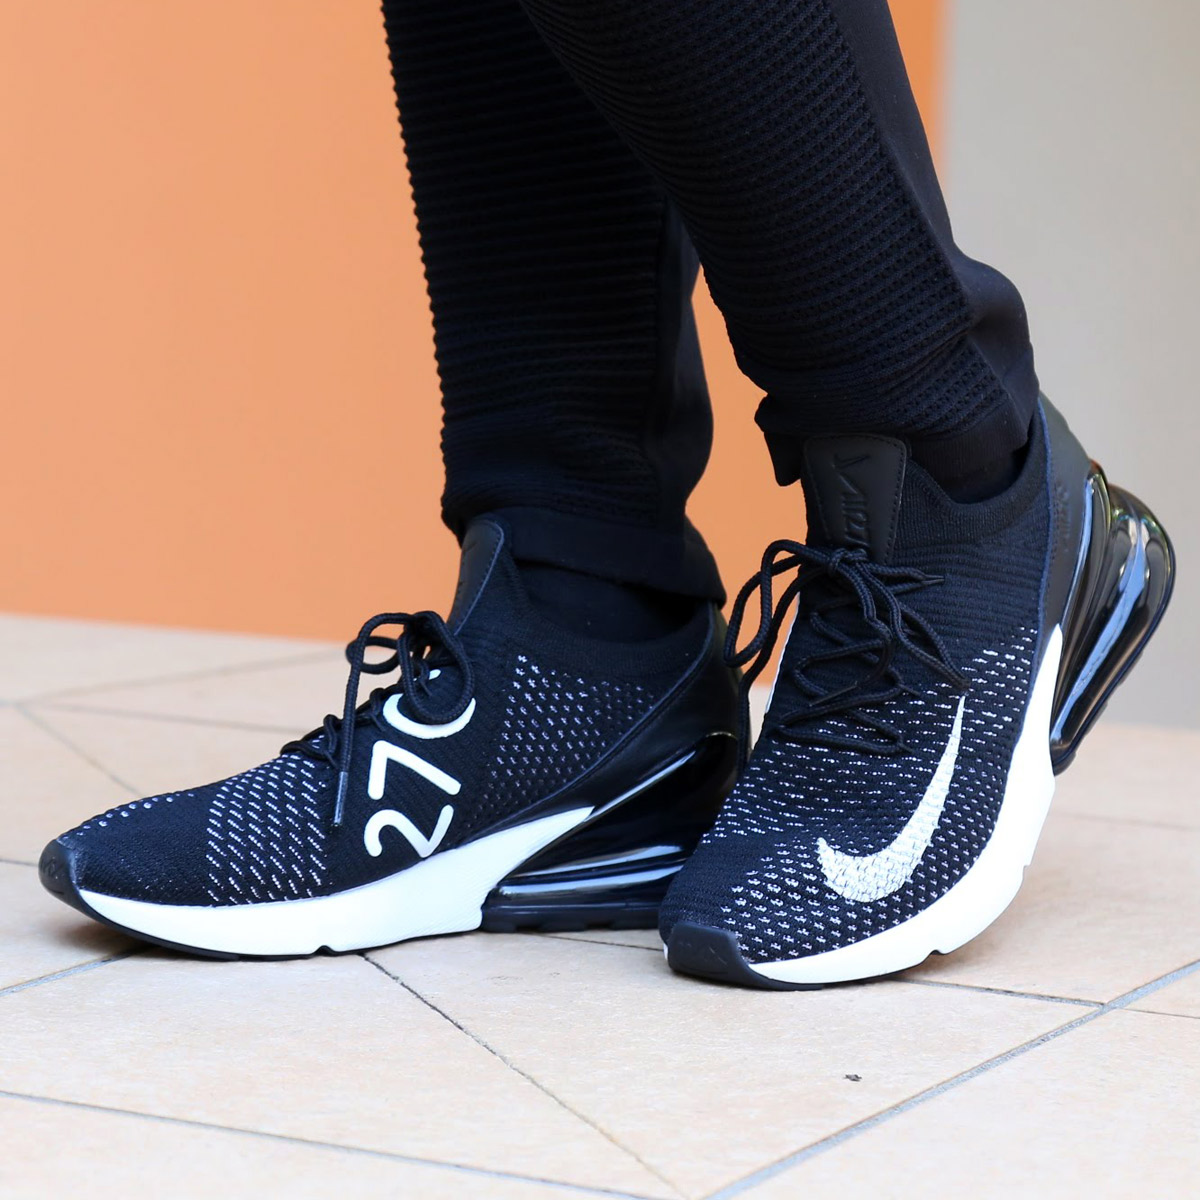 4088367be0d55 Buy nike air max 270 flyknit womens price   up to 49% Discounts